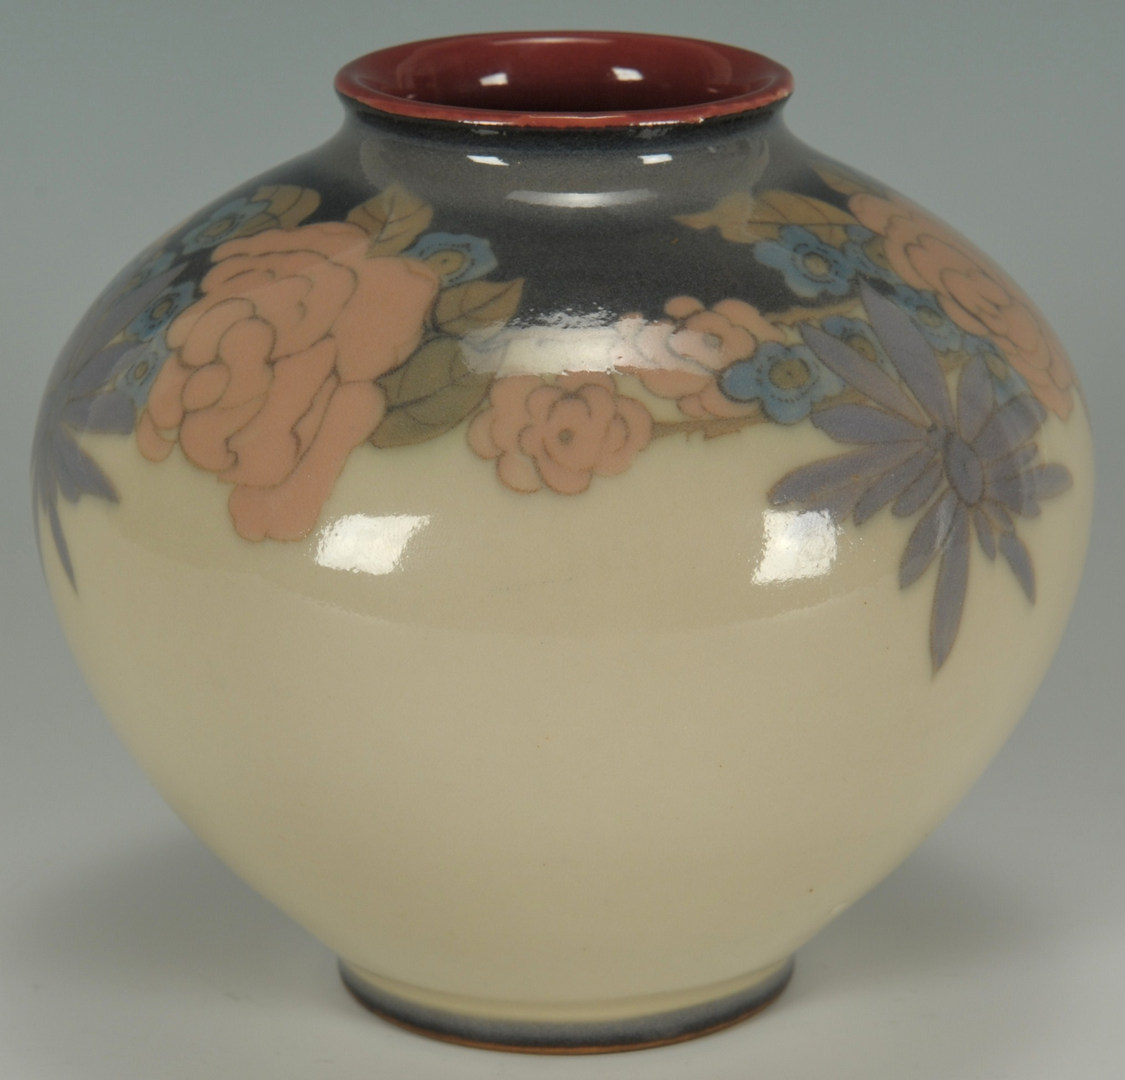 Lot 133: Rookwood Vase by Elizabeth McDermott